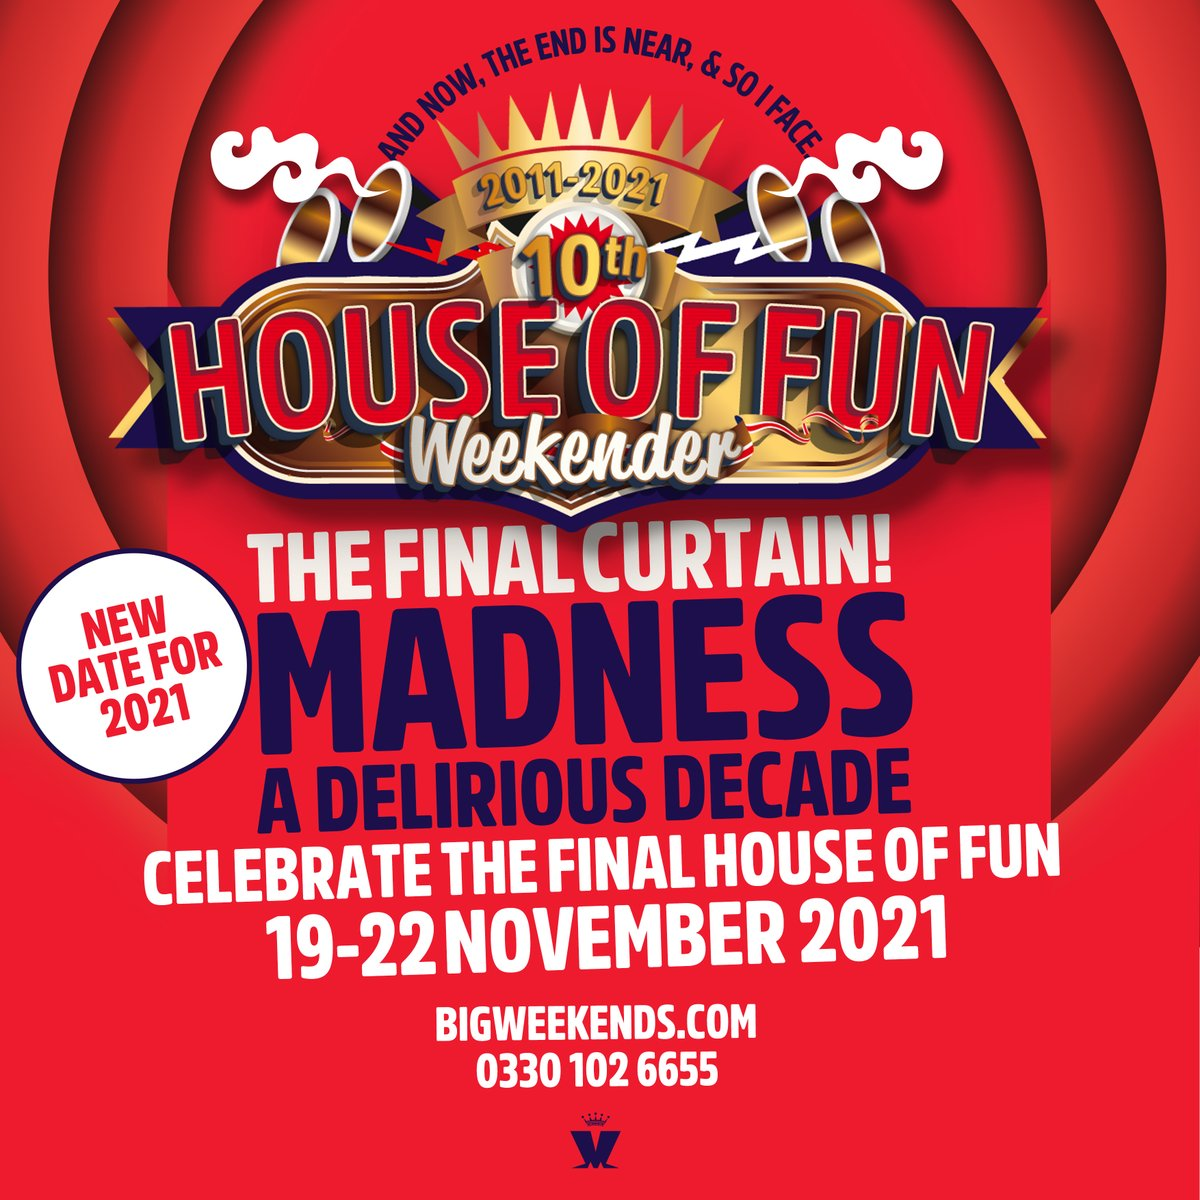 It's with a heavy heart that we confirm there will be no #HouseOfFunWeekender this year. That final curtain will have to wait until the rescheduled date of 19th-22nd November 2021!! Please see here for more info: bigweekends.com/help-contact/r…